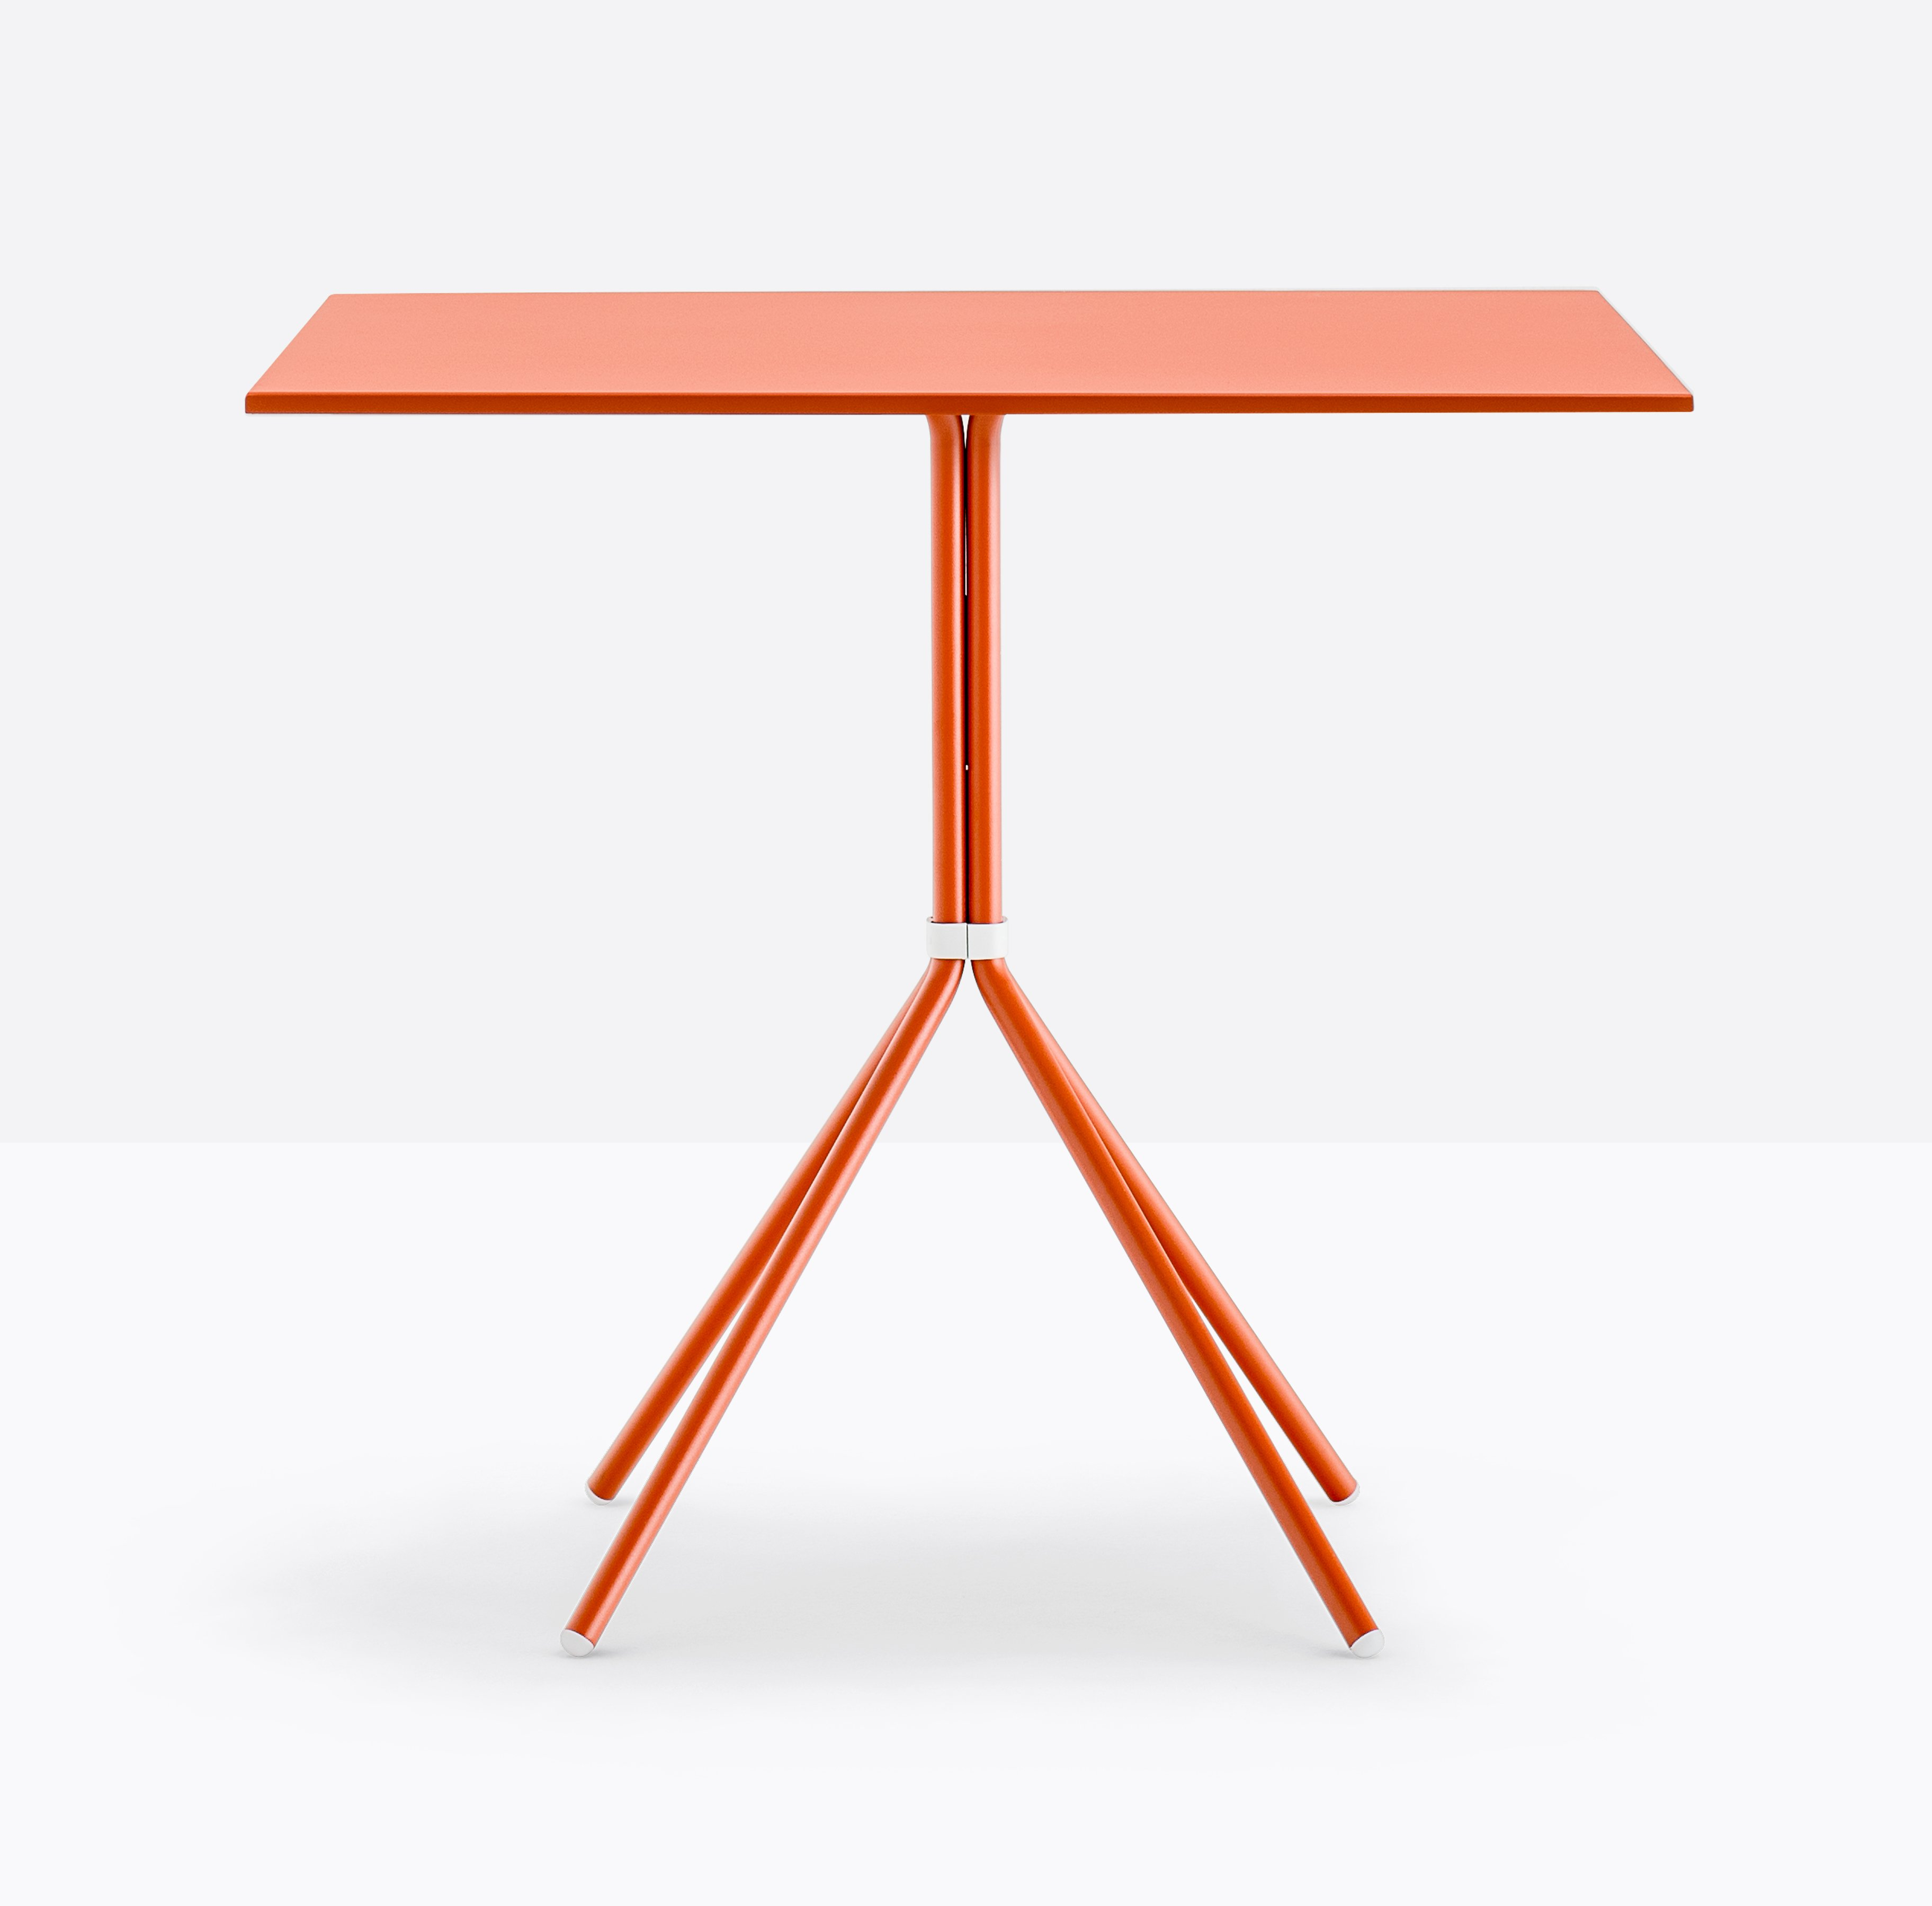 Nolita 5454 Table dining from Pedrali, designed by CMP Design